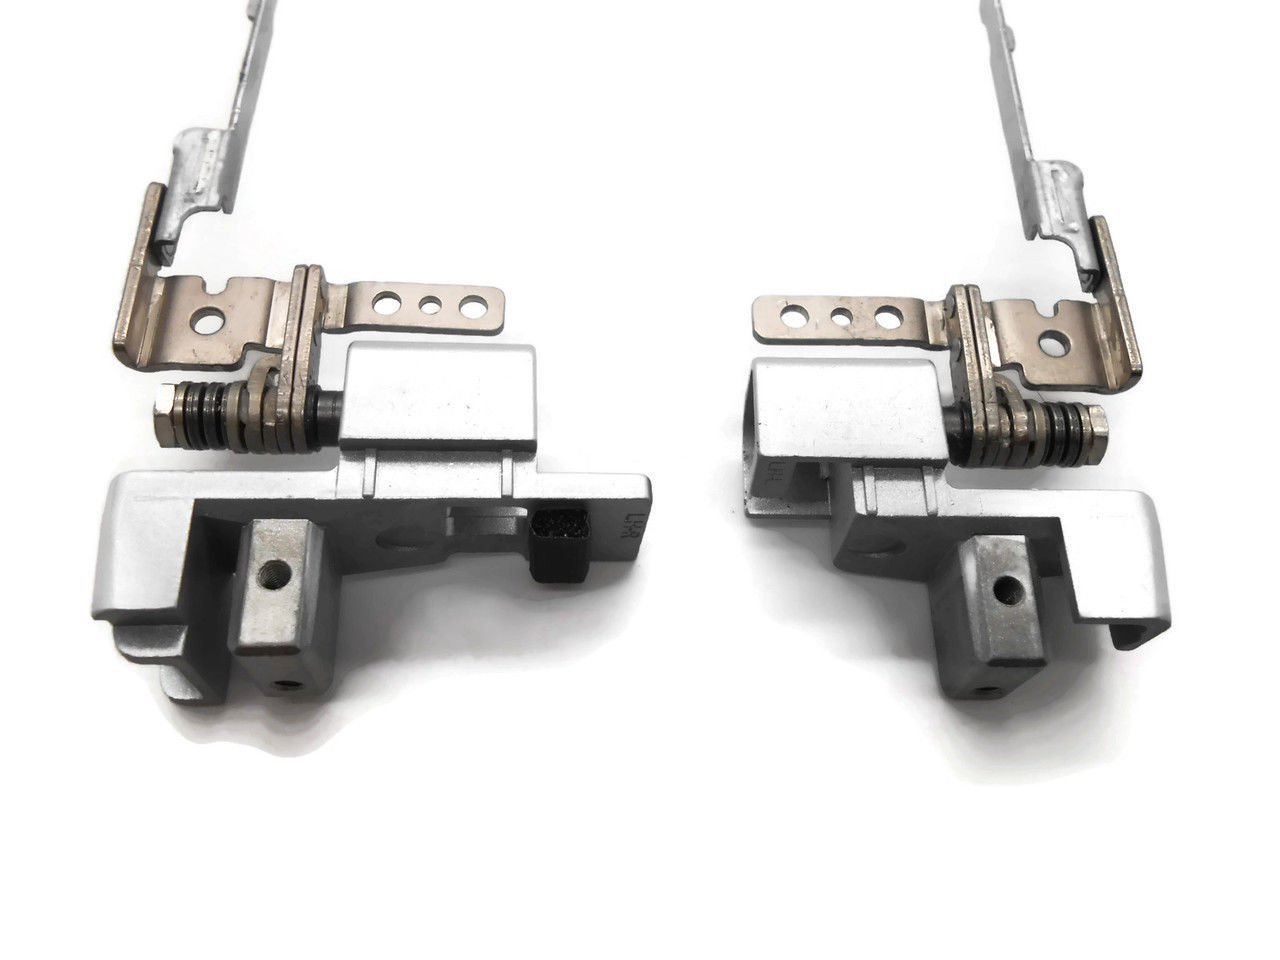 Replacement LCD Hinge Left + Right for Lenovo Thinkpad E420 Compatible 04W2237 by Kam Kin (Image #3)